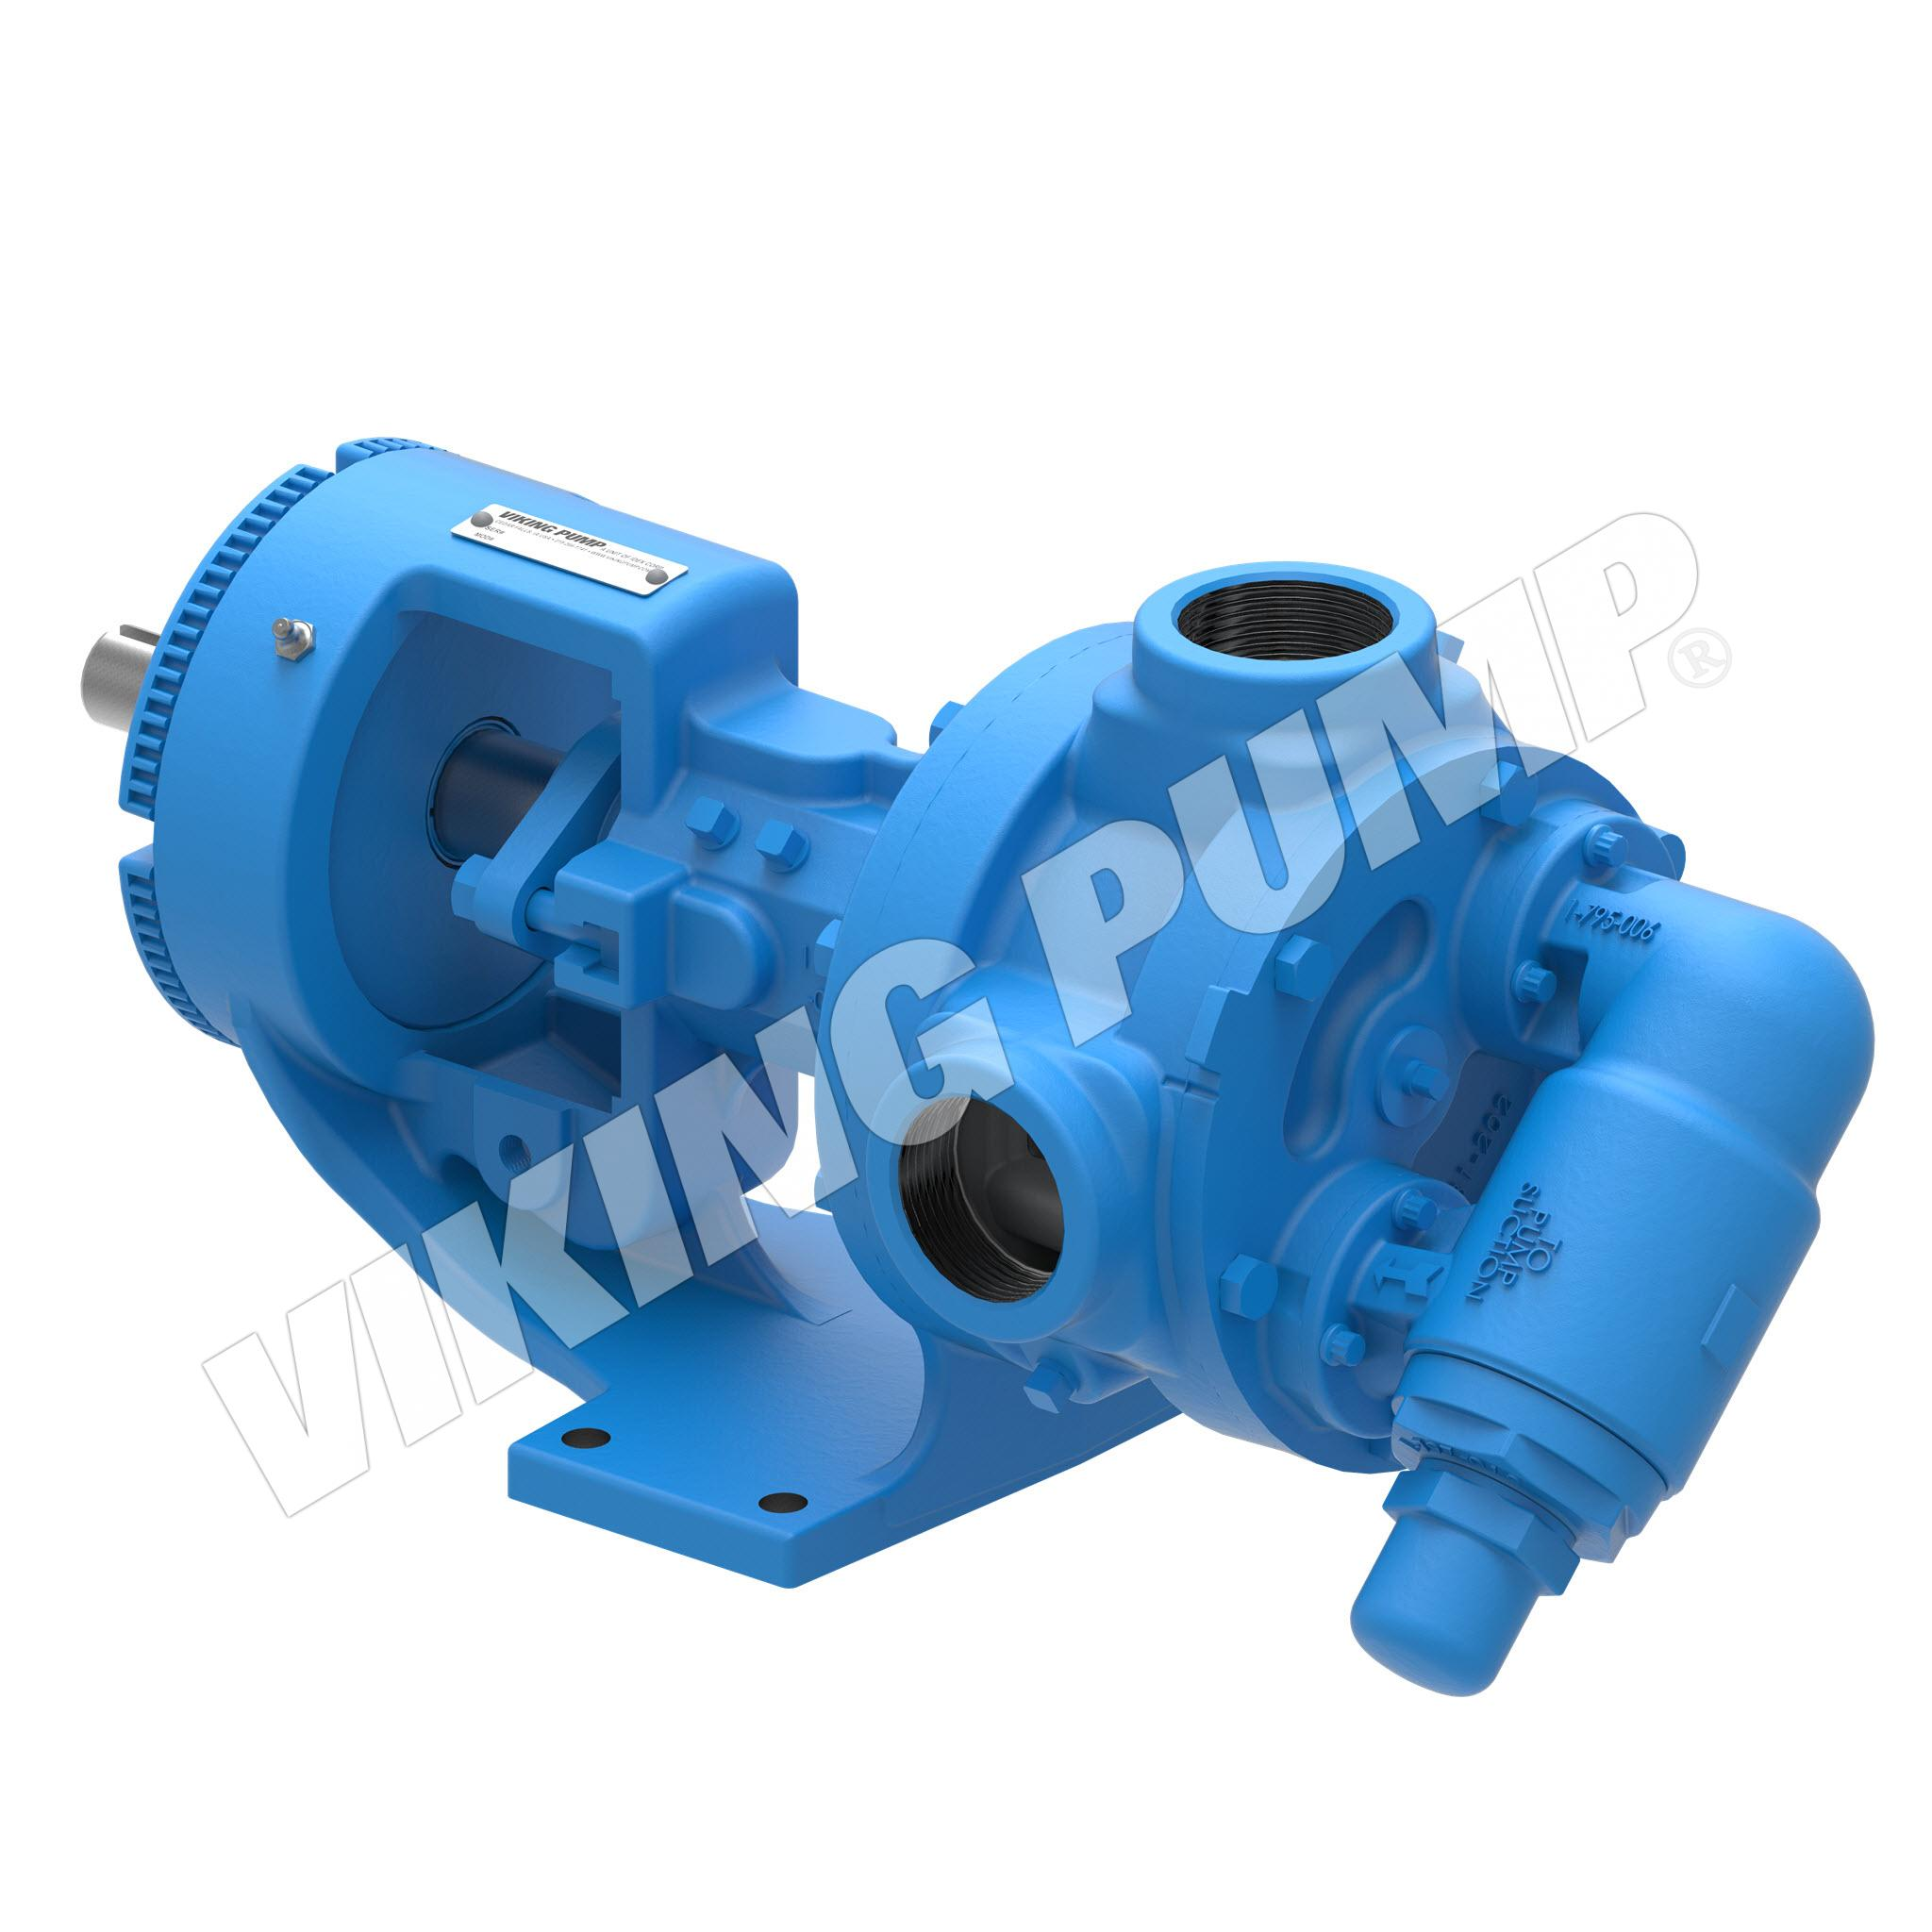 Model K124AE, Foot Mounted, Packed Gland, Relief Valve Pump